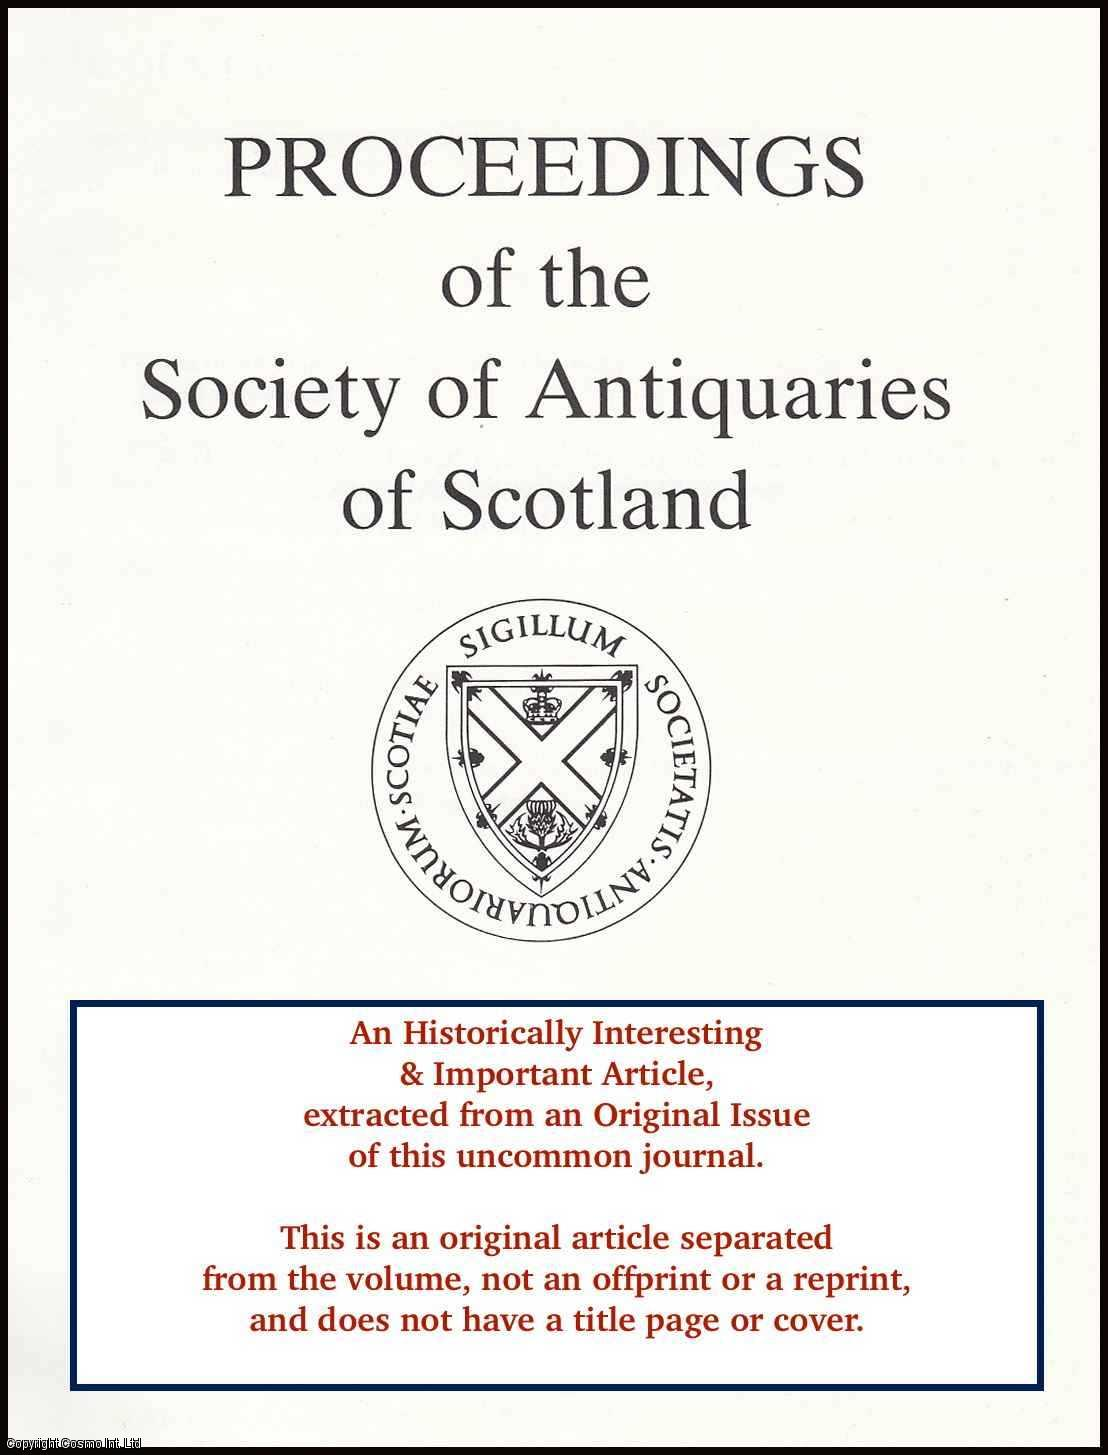 BAILEY, GEOFF B. - Stream Crossings on The Antonine Wall. An original article from the Proceedings of the Society of Antiquaries of Scotland, 1996.